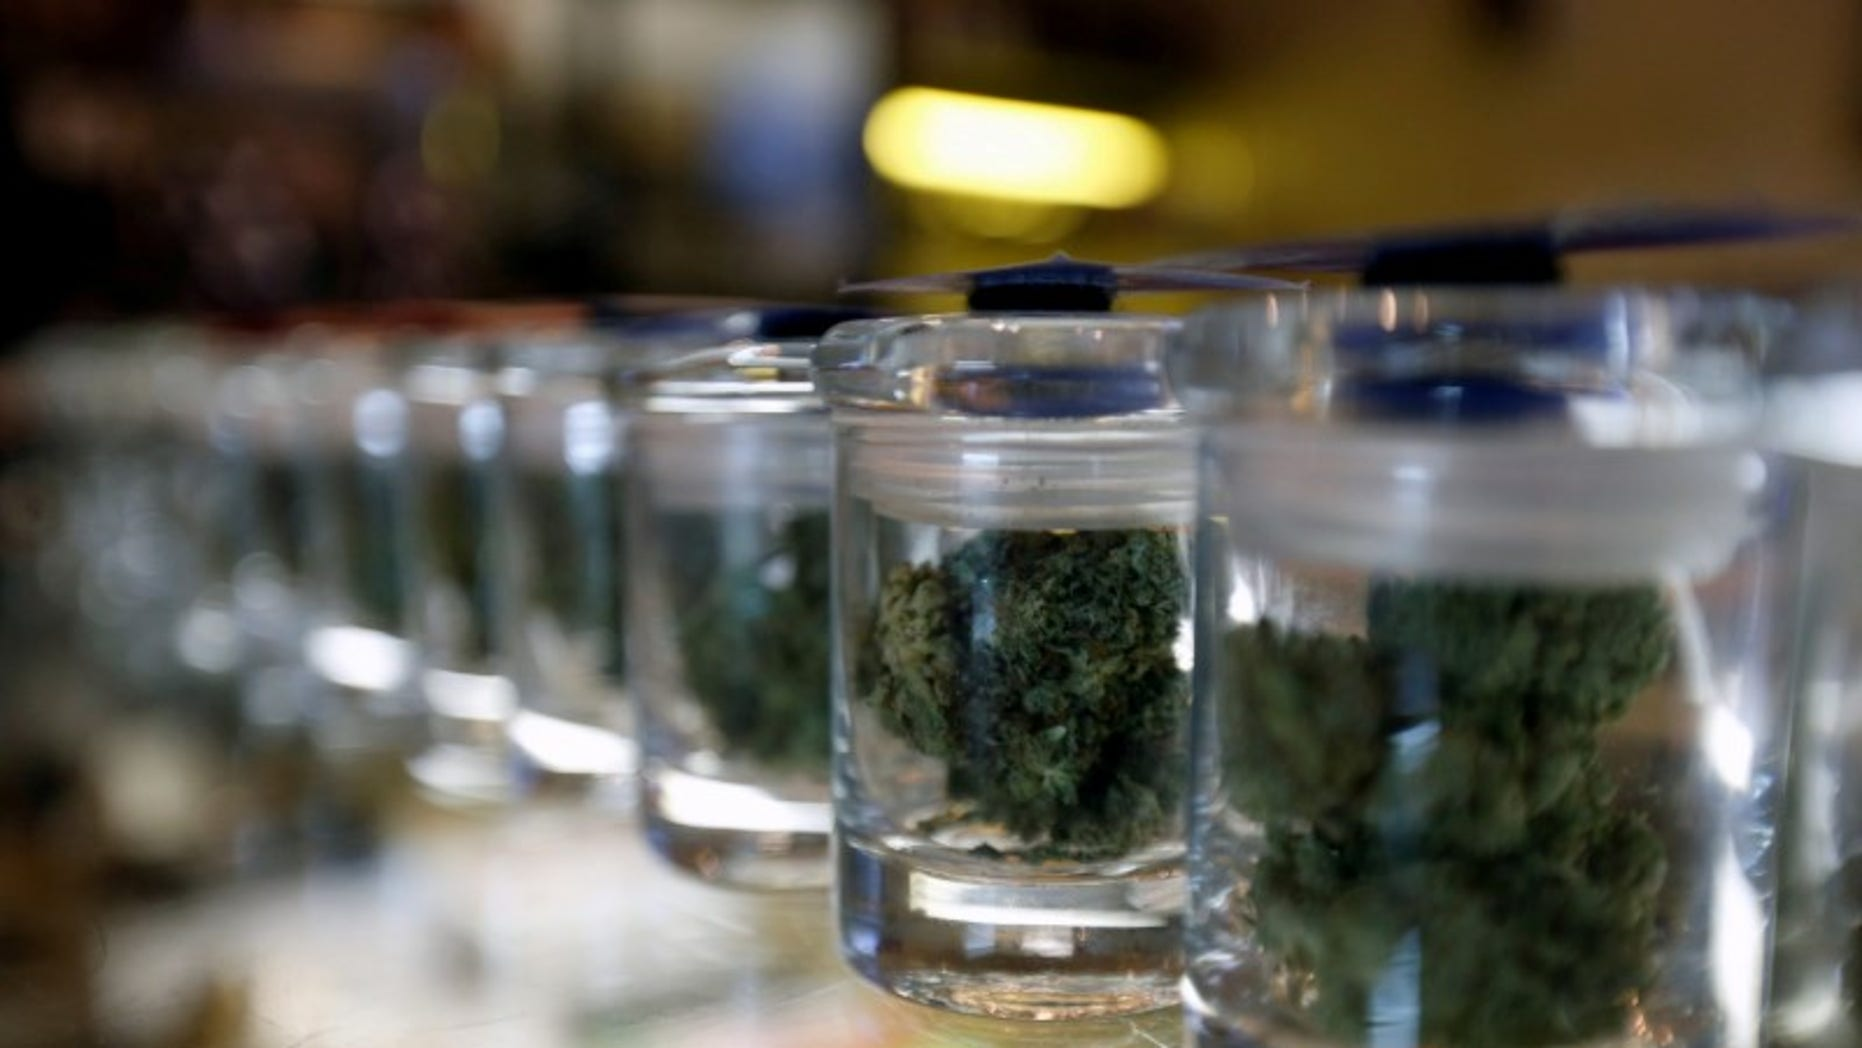 FILE PHOTO - A variety of medicinal marijuana buds in jars are pictured at Los Angeles Patients & Caregivers Group dispensary in West Hollywood